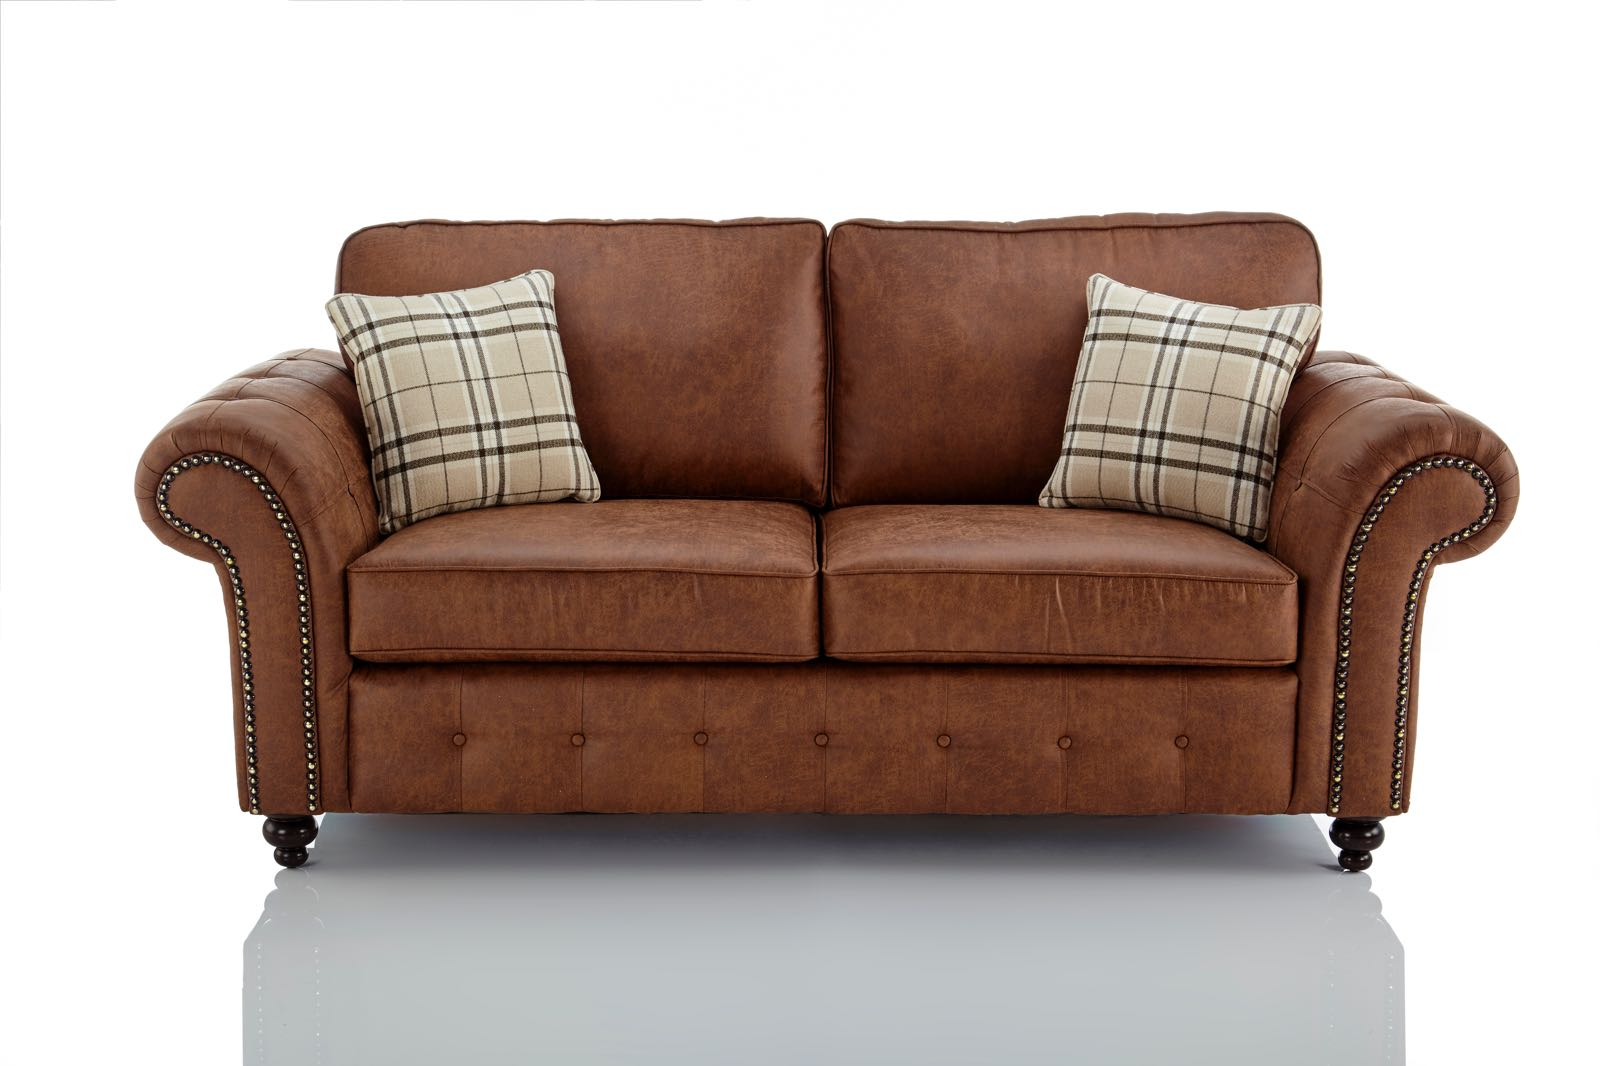 Kunstleder Couch Oakland Faux Leather 3 Seater Sofa In Brown | Just Sleep On It